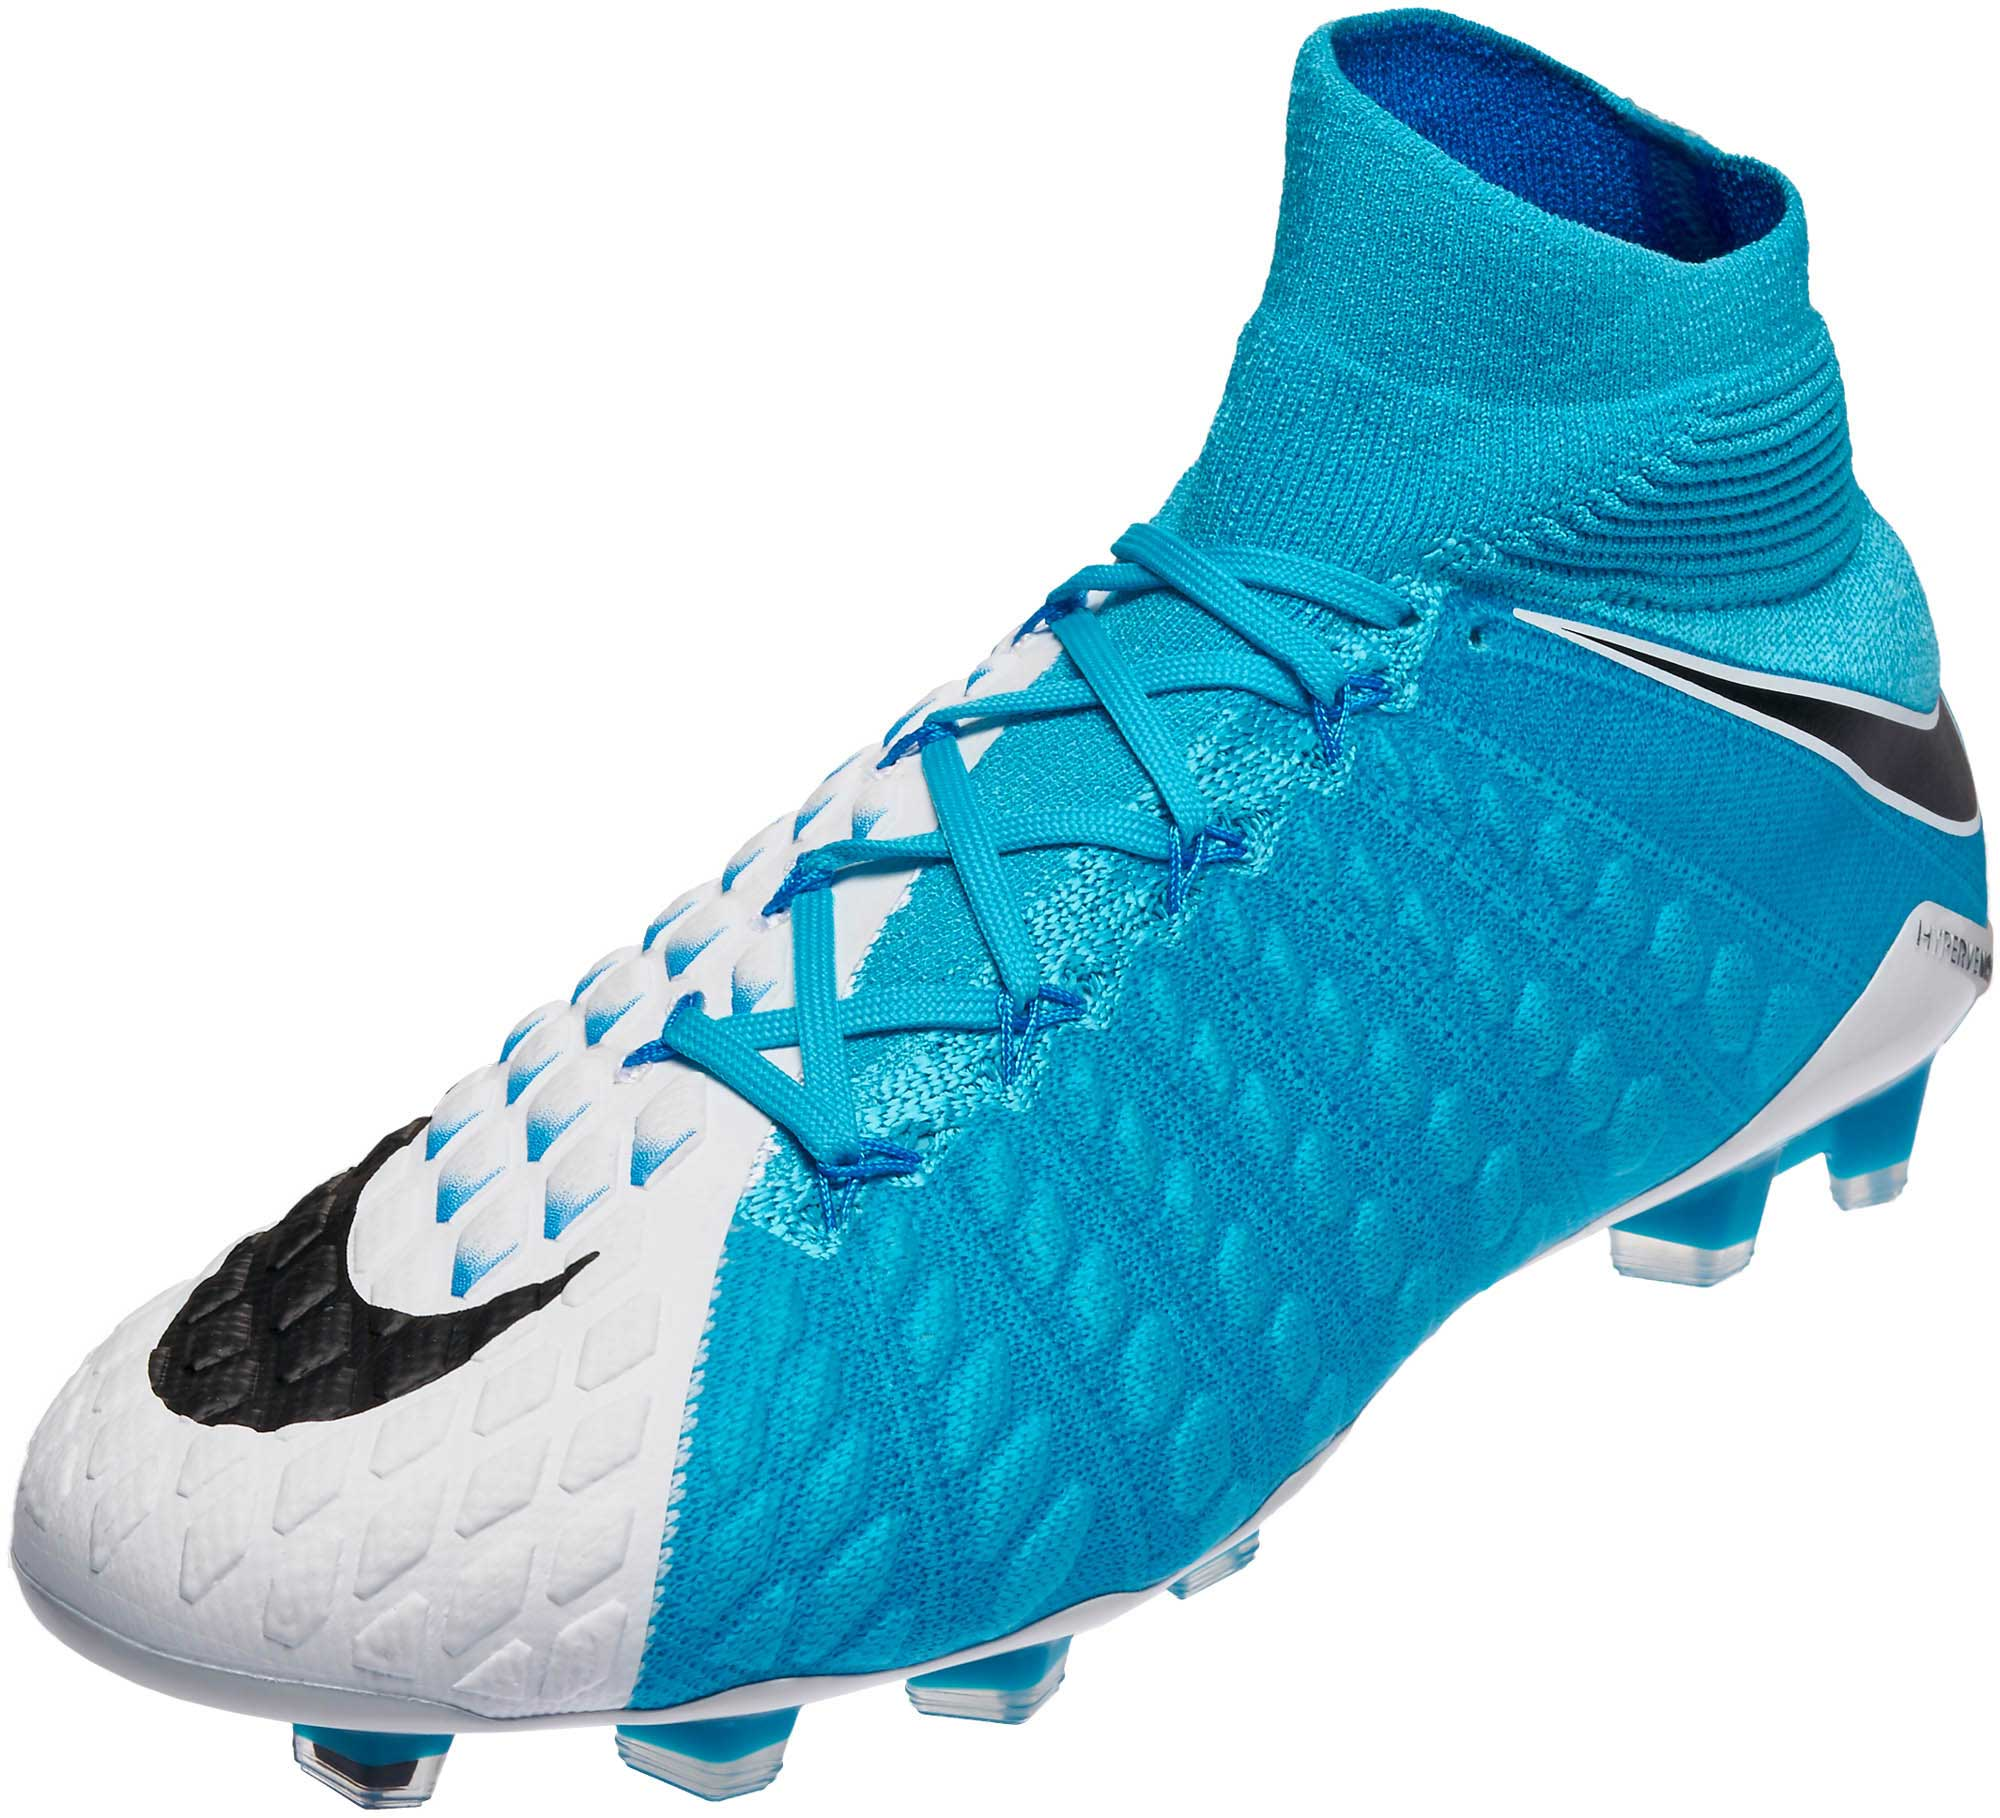 Nike Hypervenom Phantom III DF FG Soccer Cleats - White ...